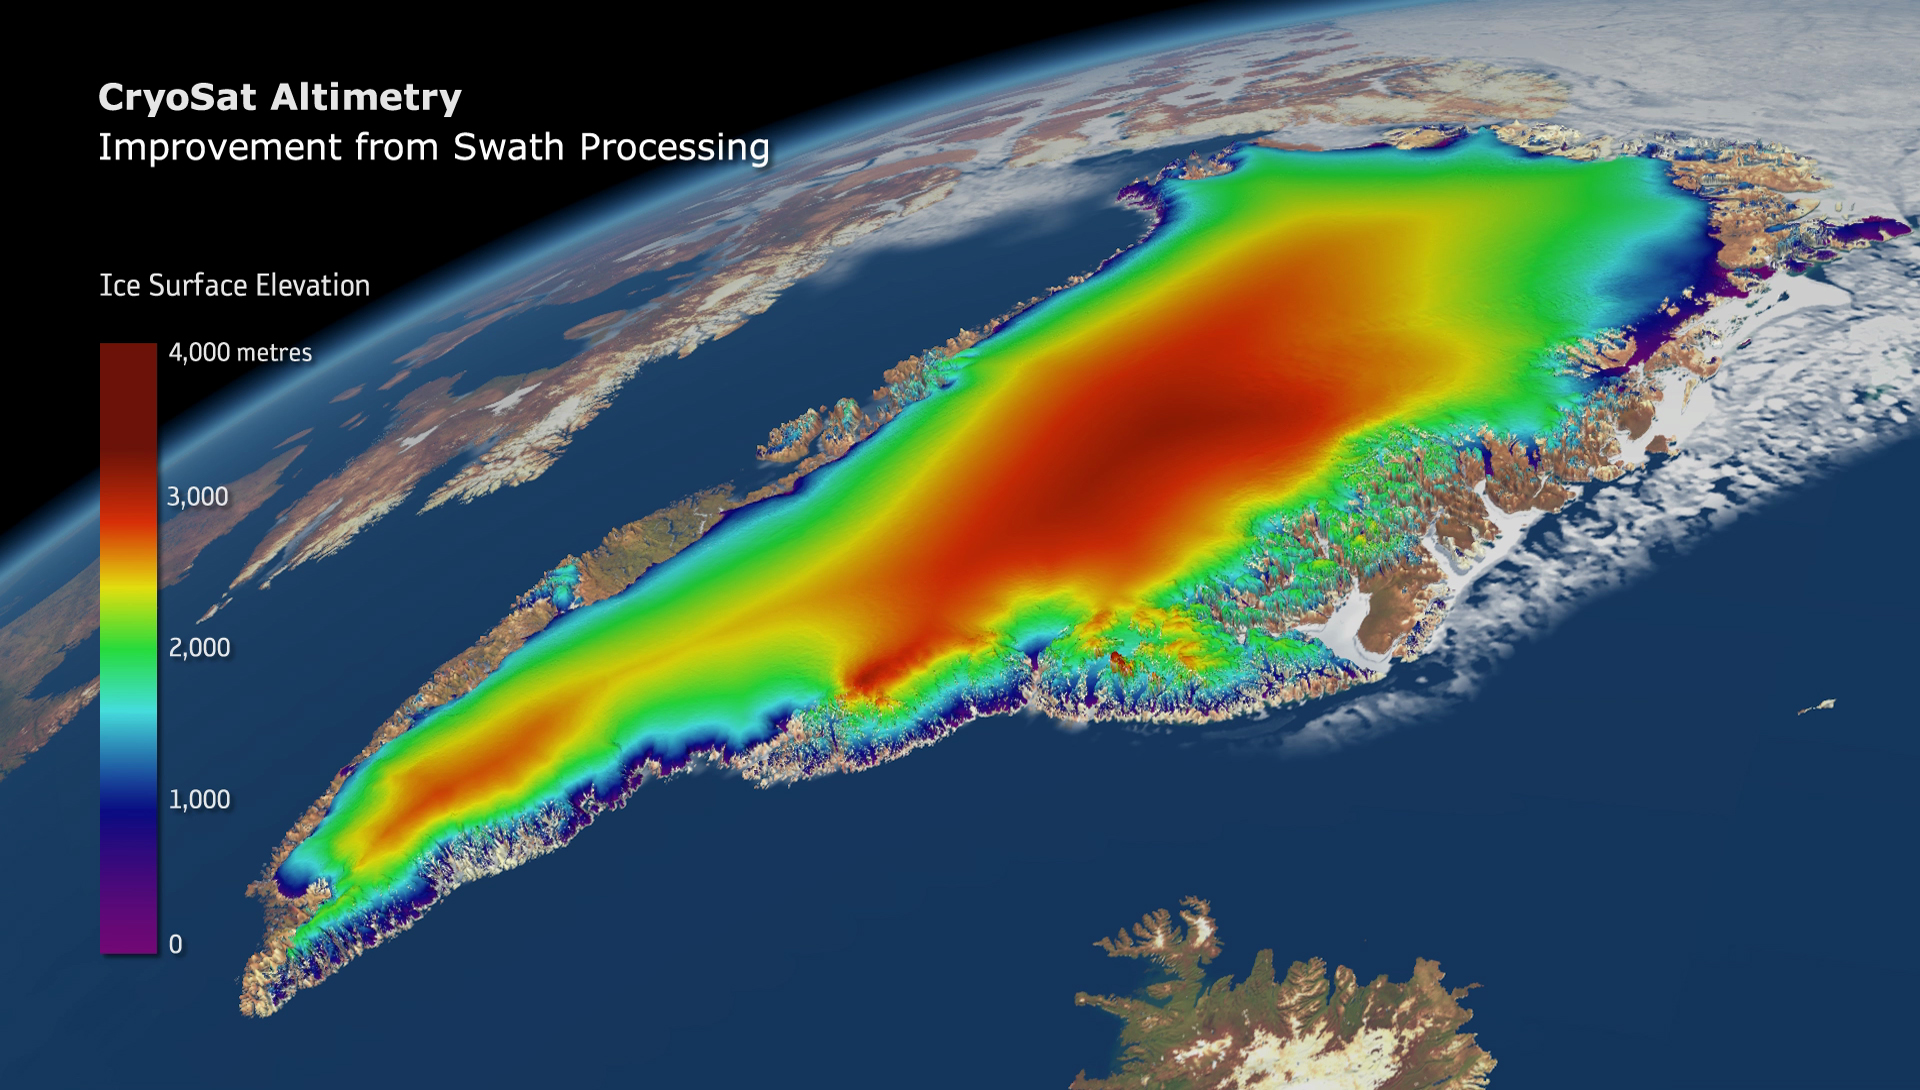 Cryosat Altimetry